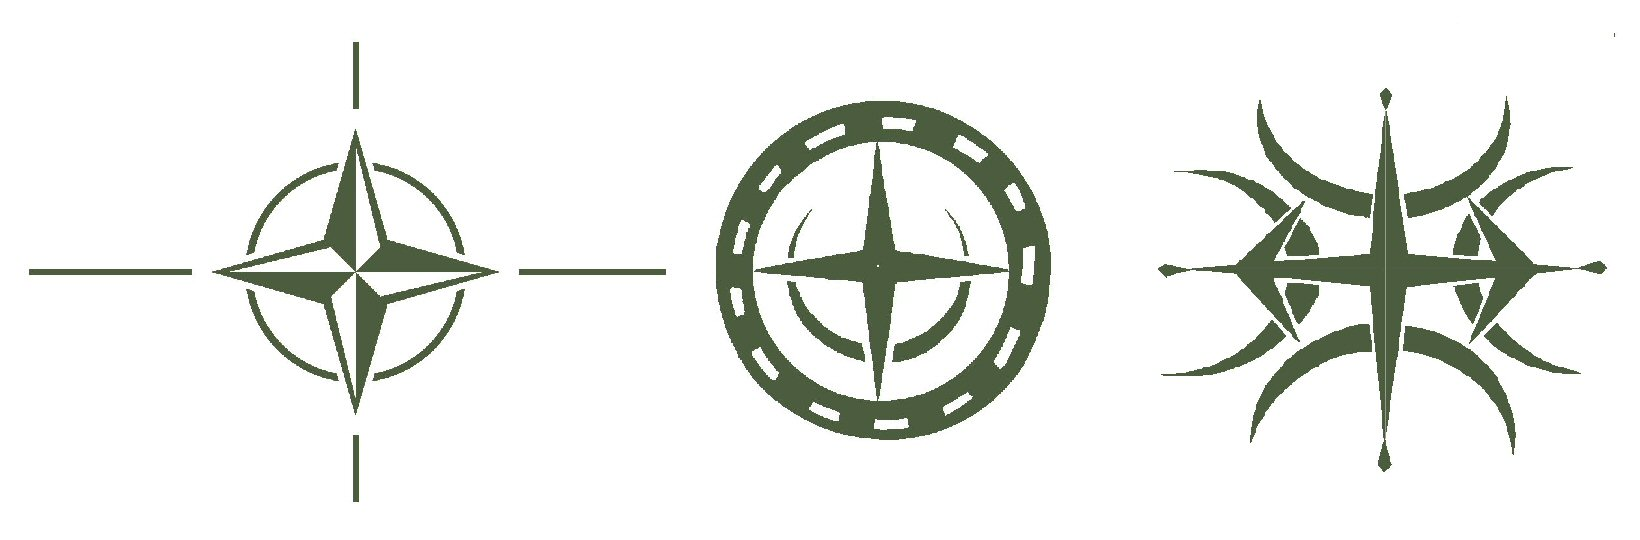 Left: Nato logo.   Middle: Winterbourne Stoke.   Right: Luxemborough.